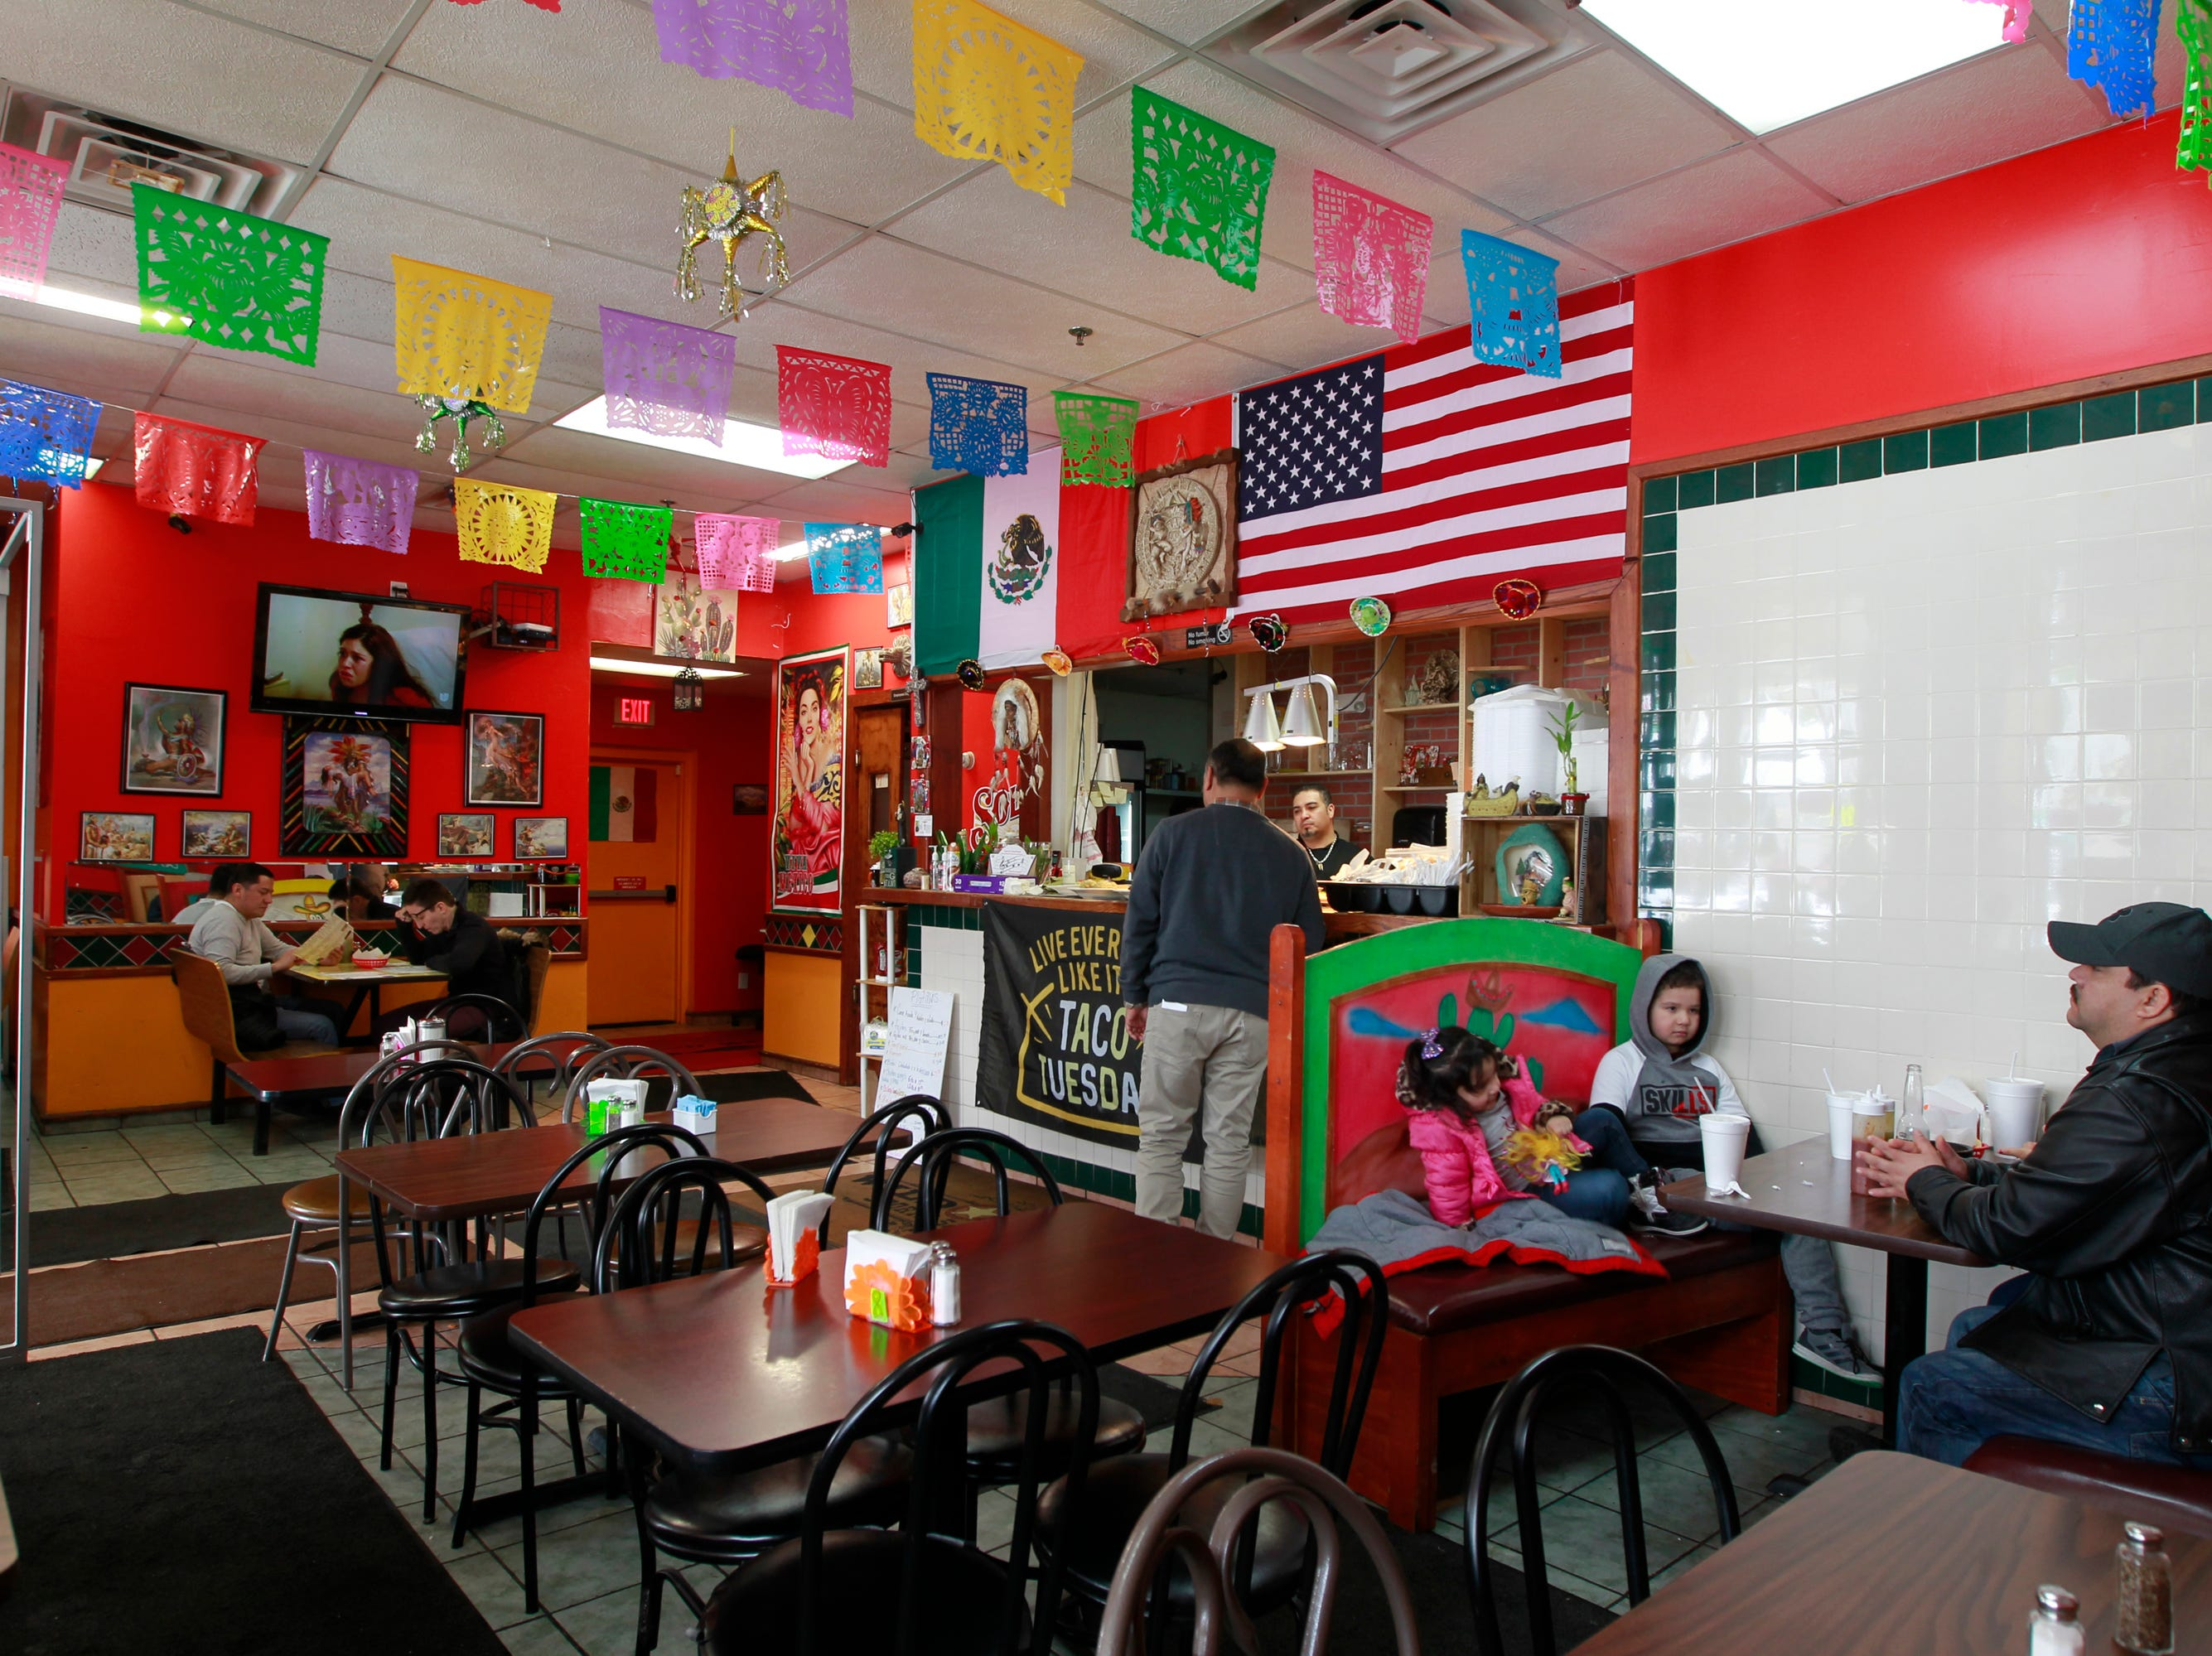 Customers begin to fill the tables at lunchtime at El Tlaxcalteca. The small storefront restaurant, which seats 46, is in a plaza at 13th and Burnham that also holds an El Rey supermarket.